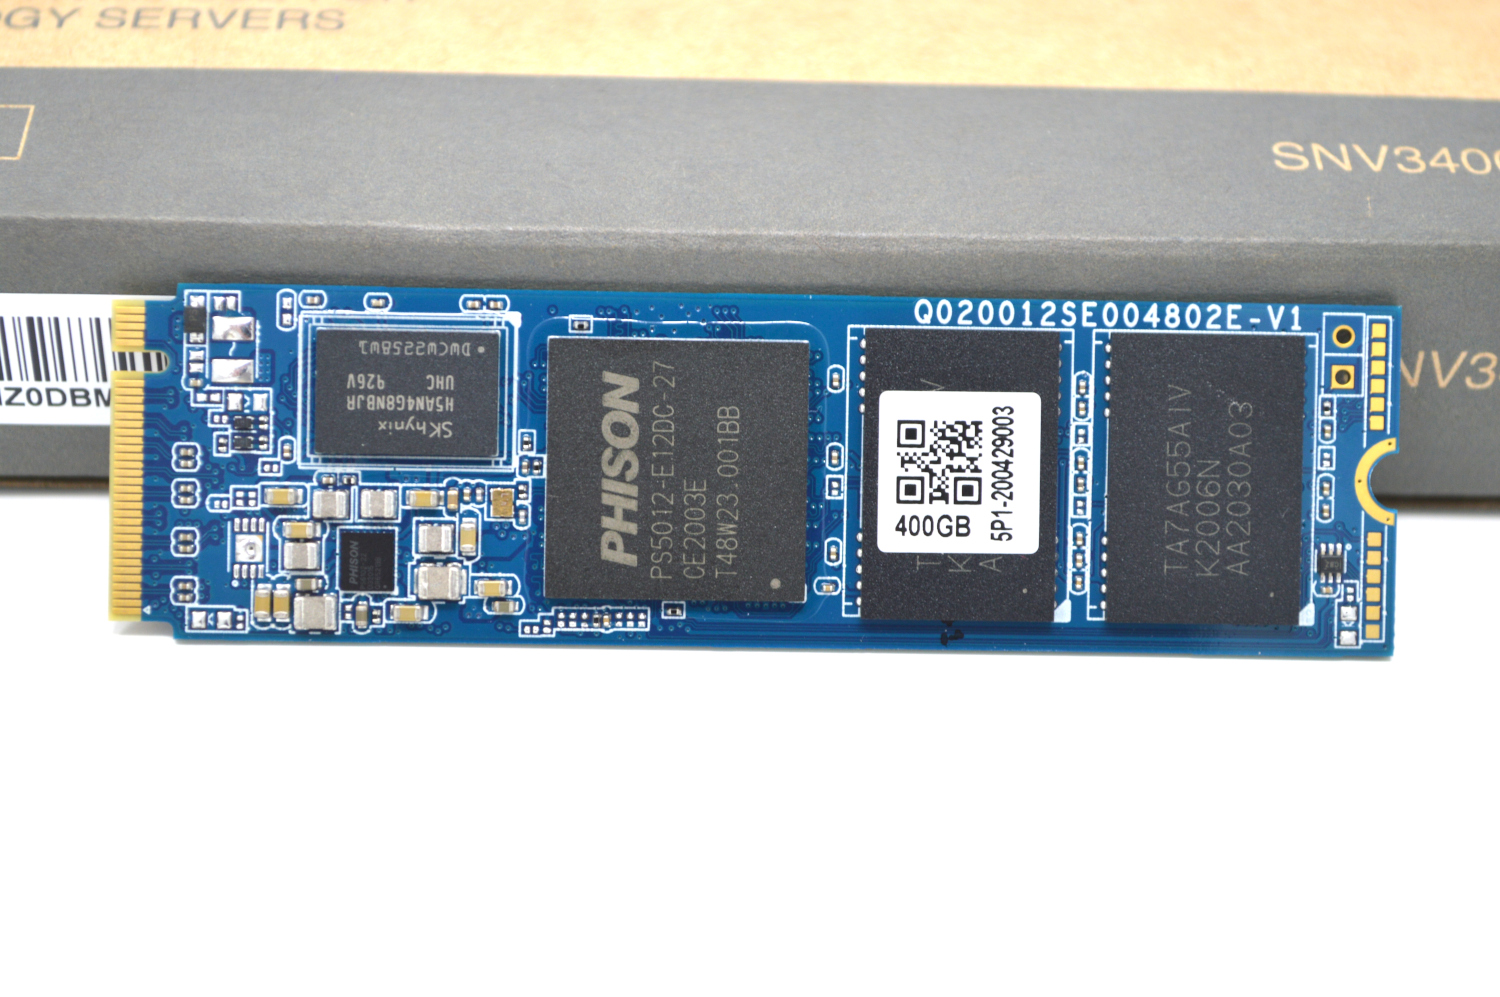 SNV3400 400G Front